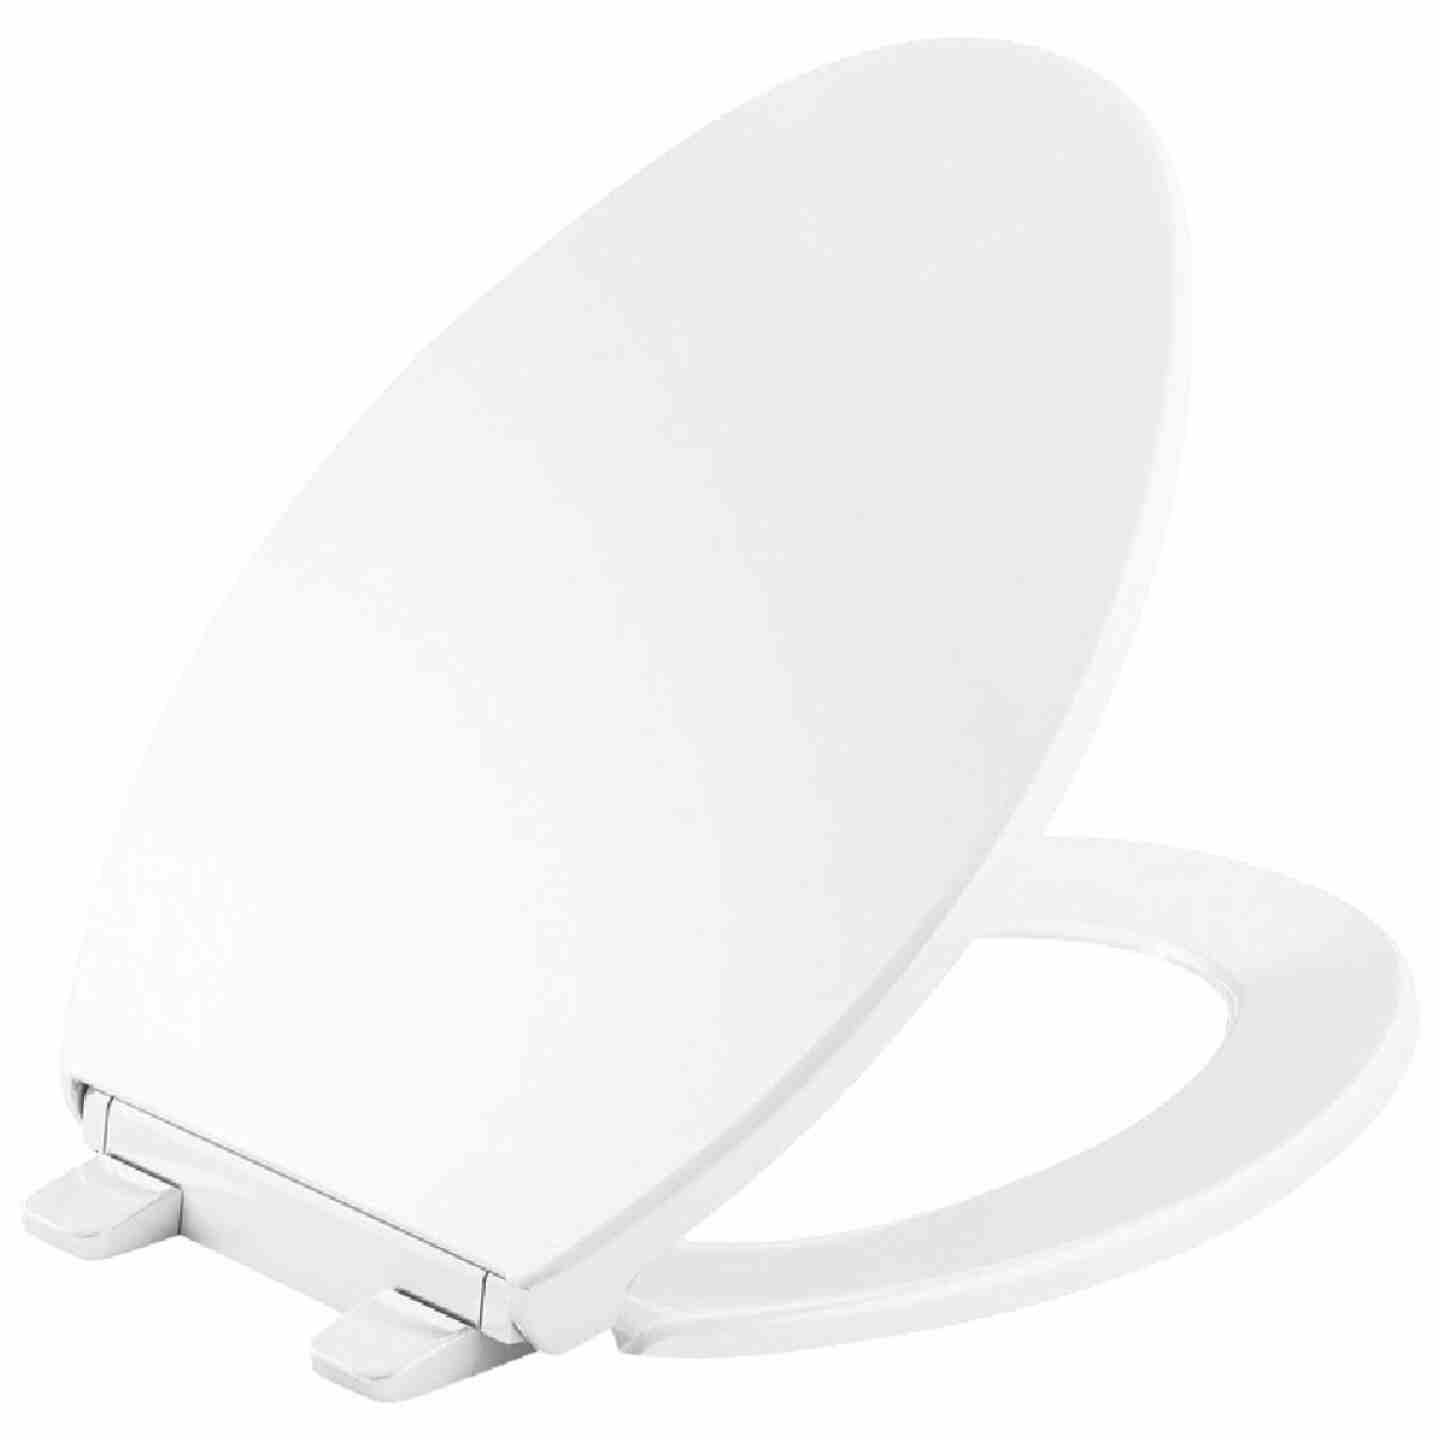 Kohler Brevia Quick-Release Elongated Closed Front White Plastic Toilet Seat Image 1